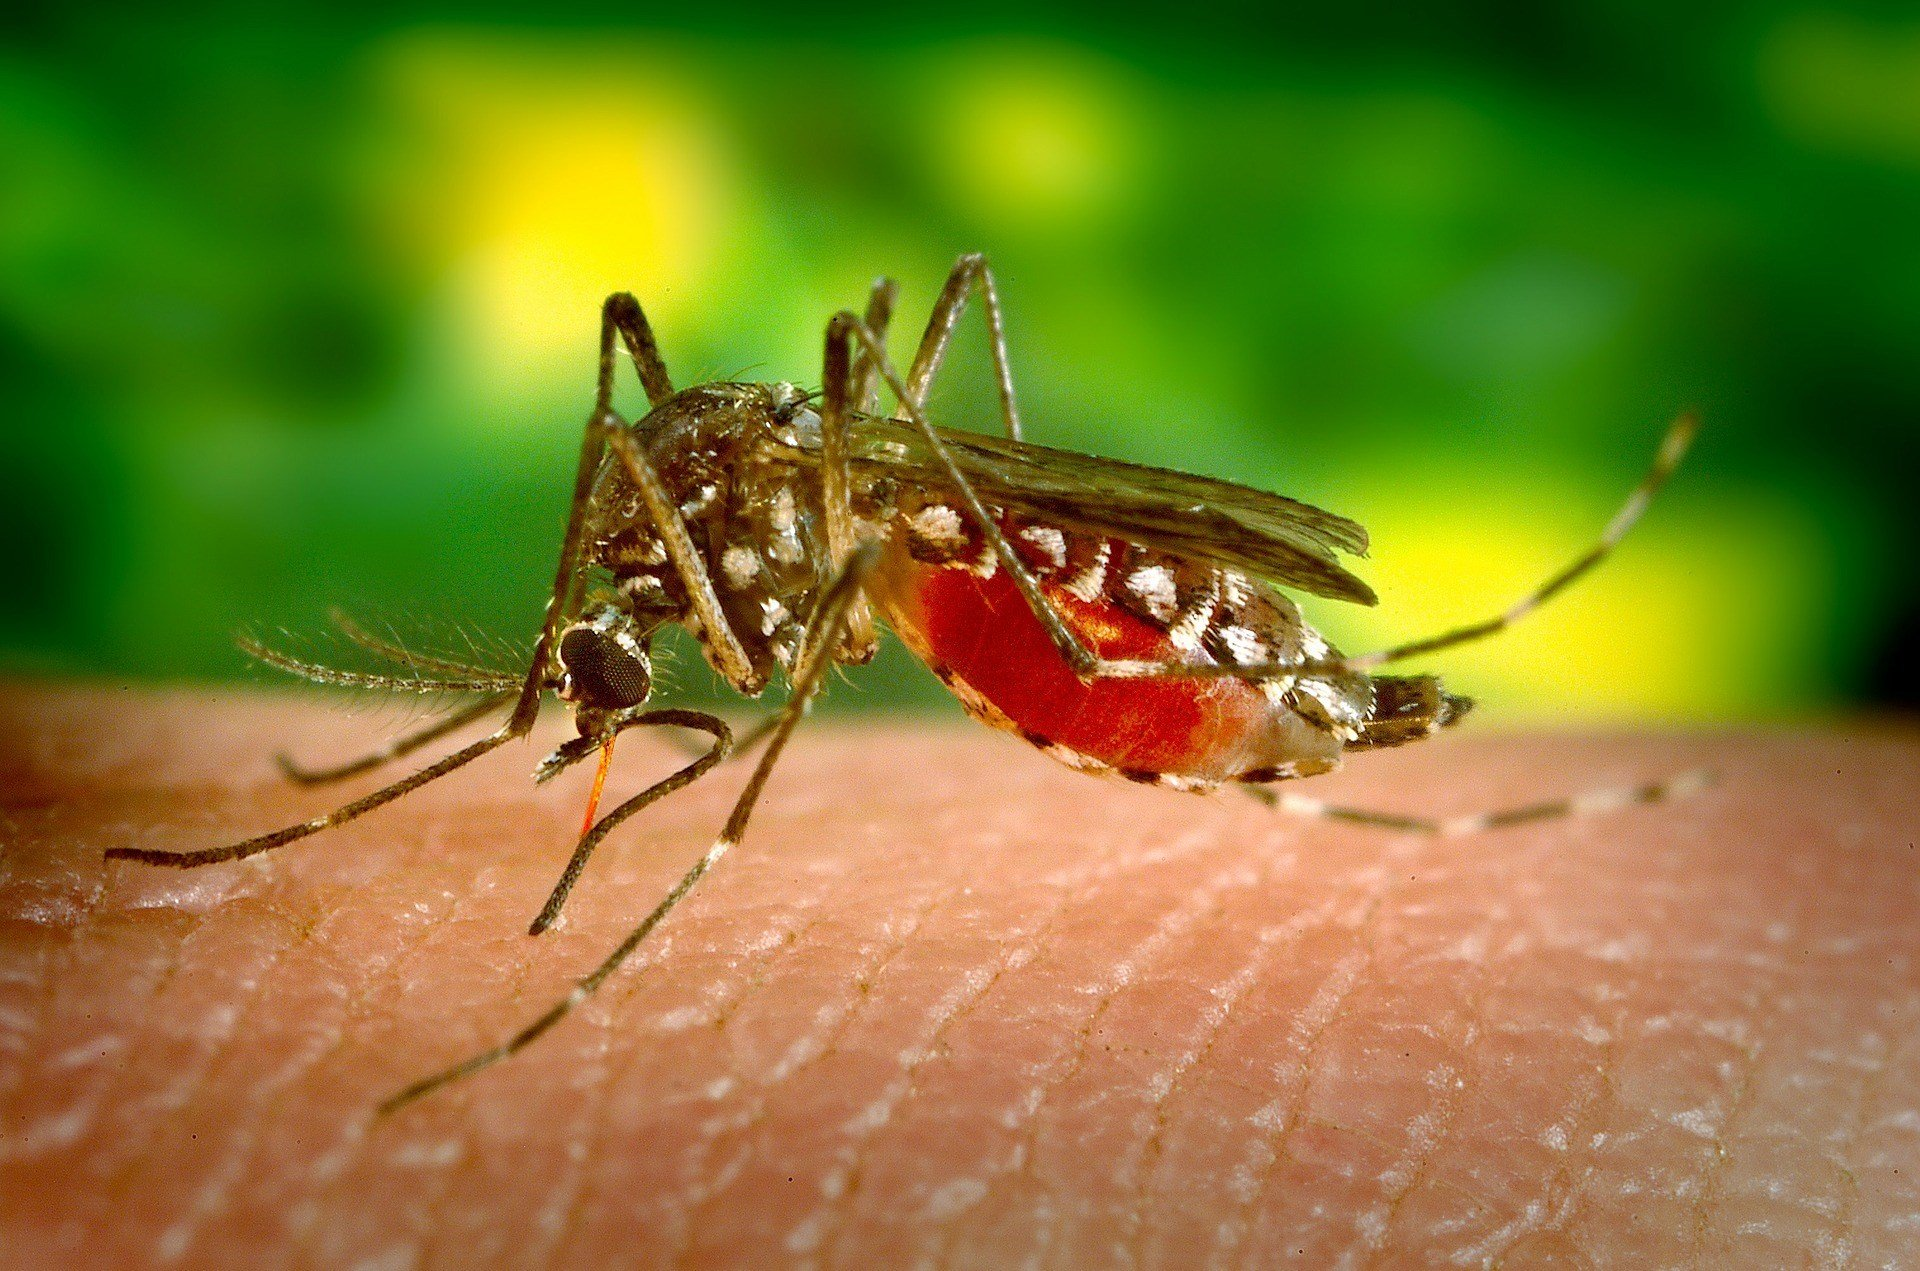 2 confirmed cases of West Nile Virus in Johnson County, KS